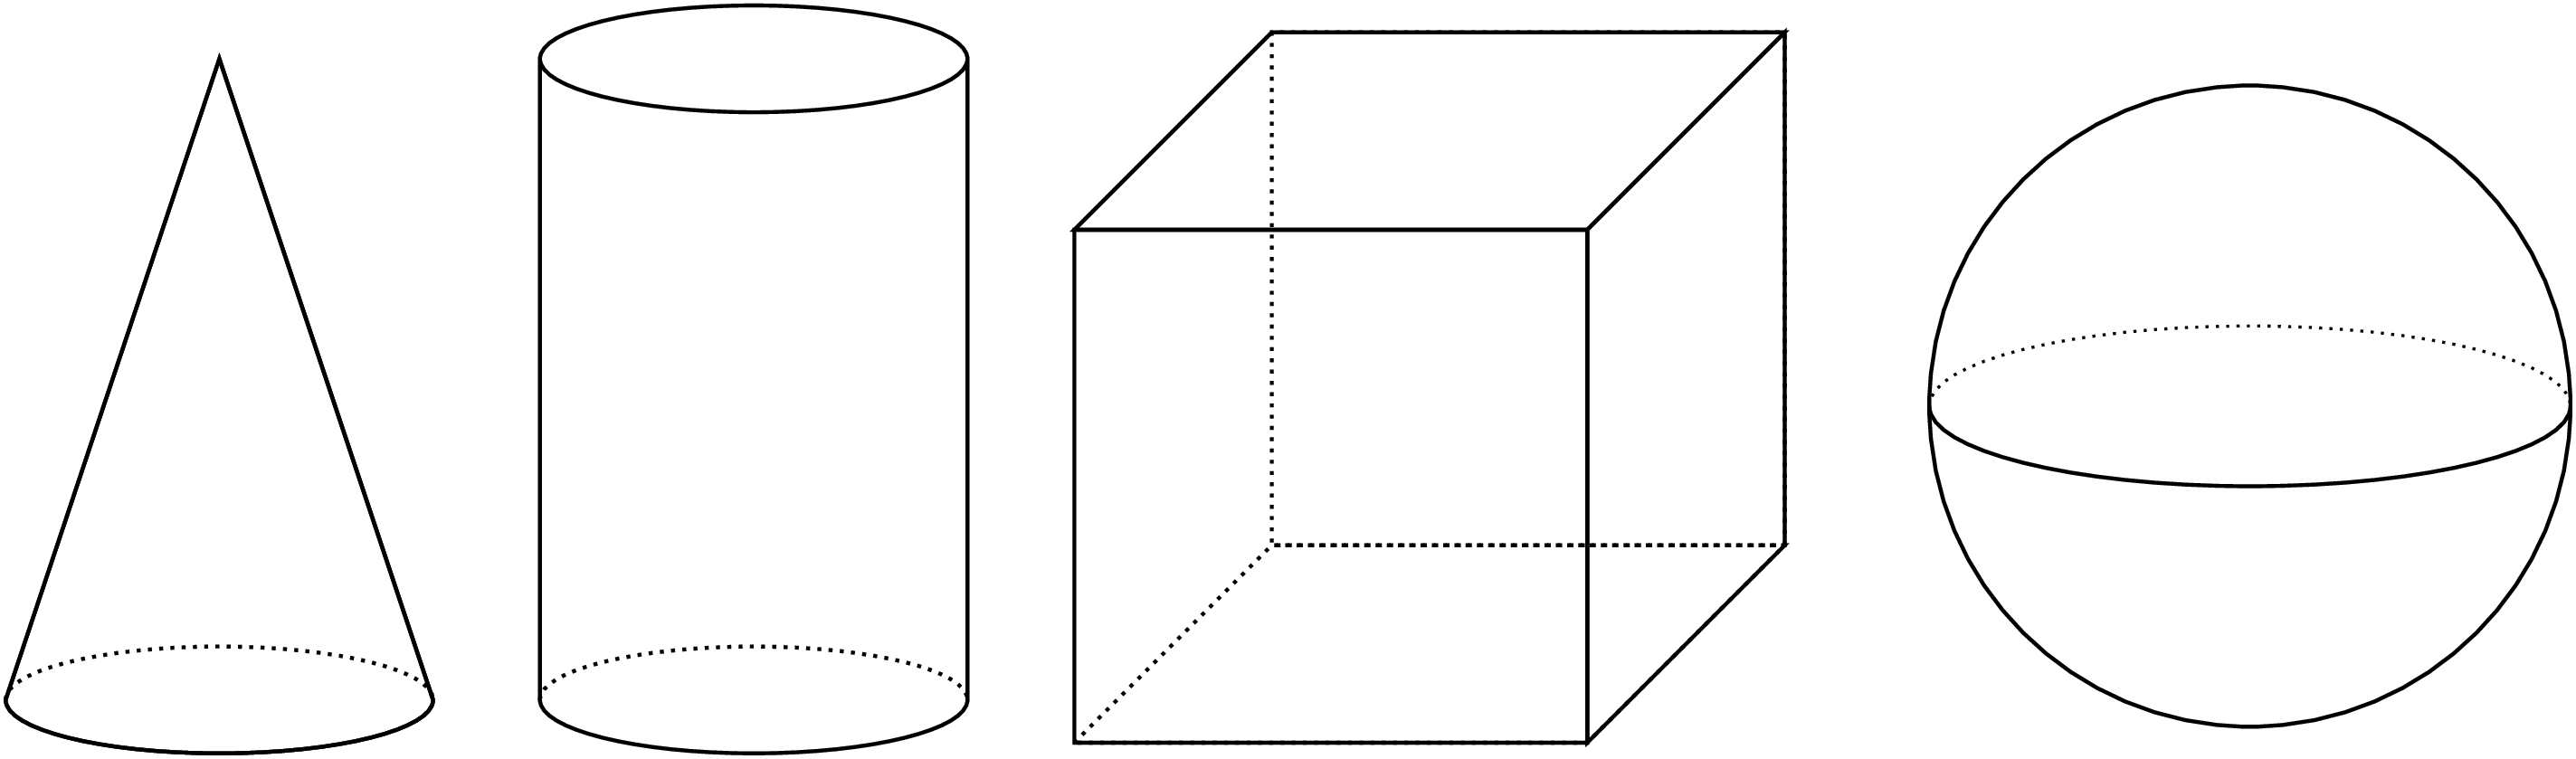 A cone, a cylinder, a cube and a sphere. On the cone's circular base, the front side of the base is solid and the back side of the base is a dotted curve. On the cylinder's circular base, the front side of the base is solid and the back side of the base is a dotted curve. On the cube, the back three edges are dotted. On the sphere's circumference, the front the front side of the curve is solid, the back side of the curve is dotted.